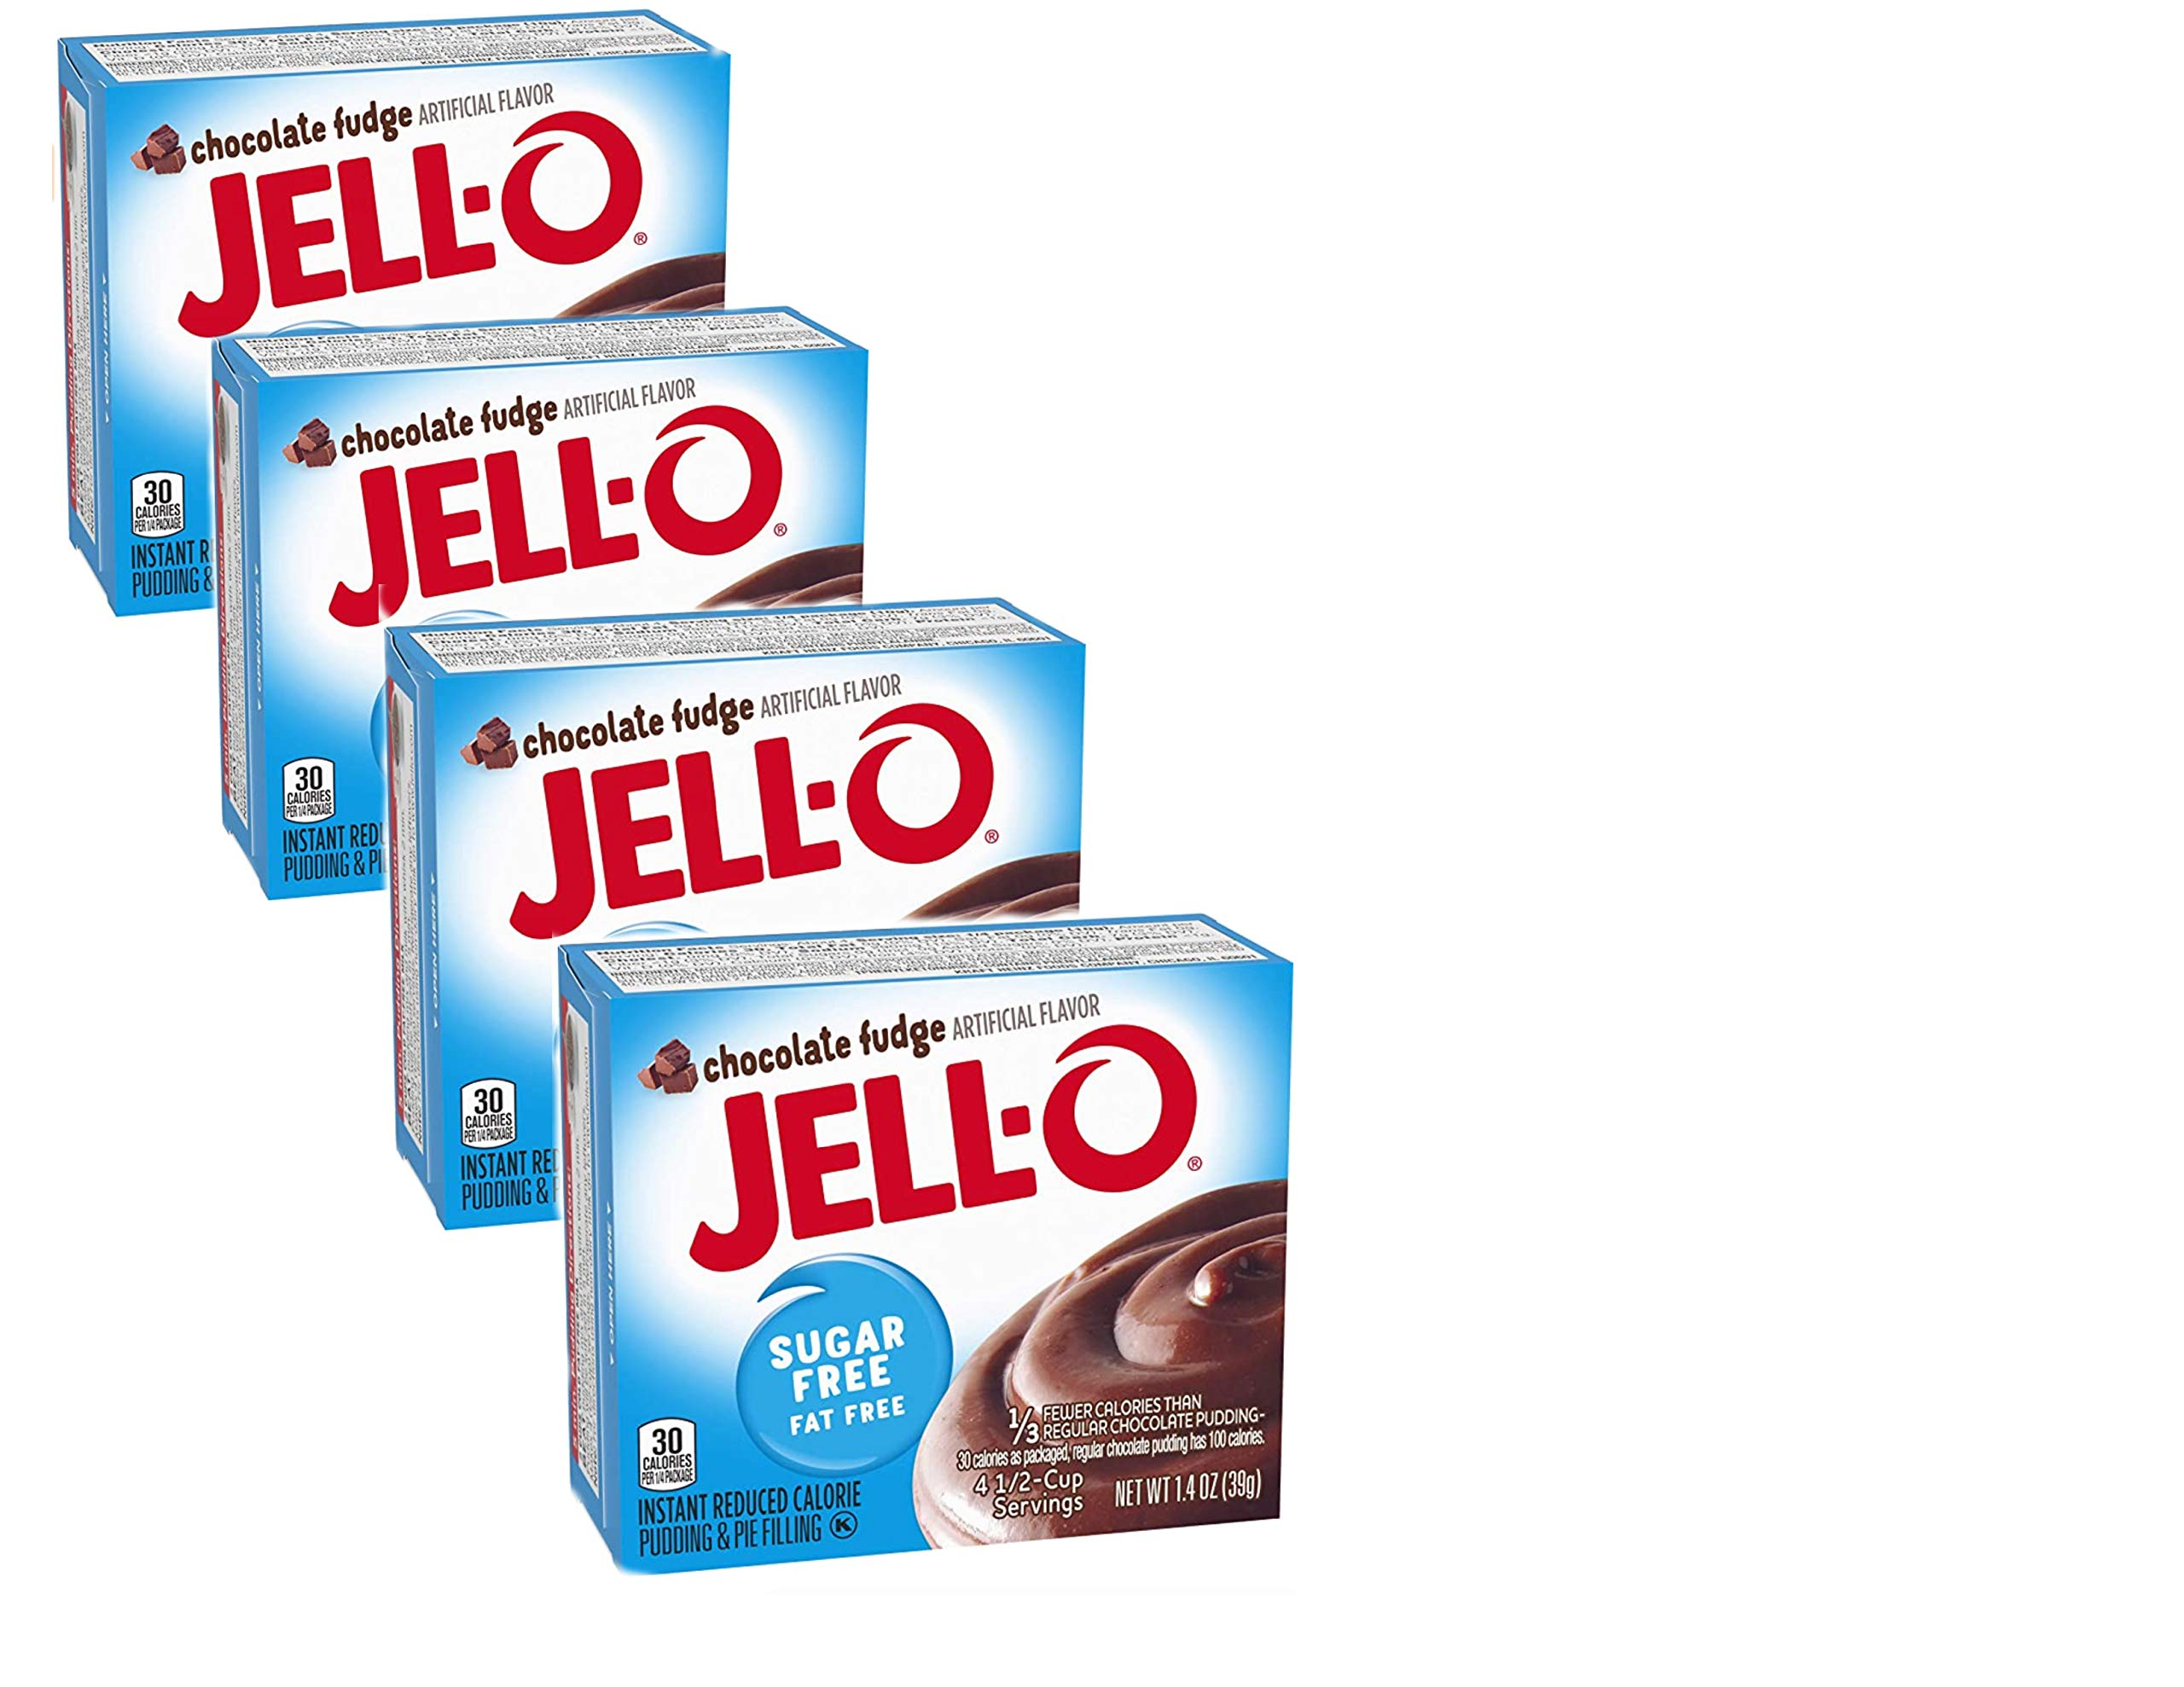 JELL-O Sugar Free Chocolate Fudge Instant Pudding & Pie Filling - 1.4 Oz (4-Pack)